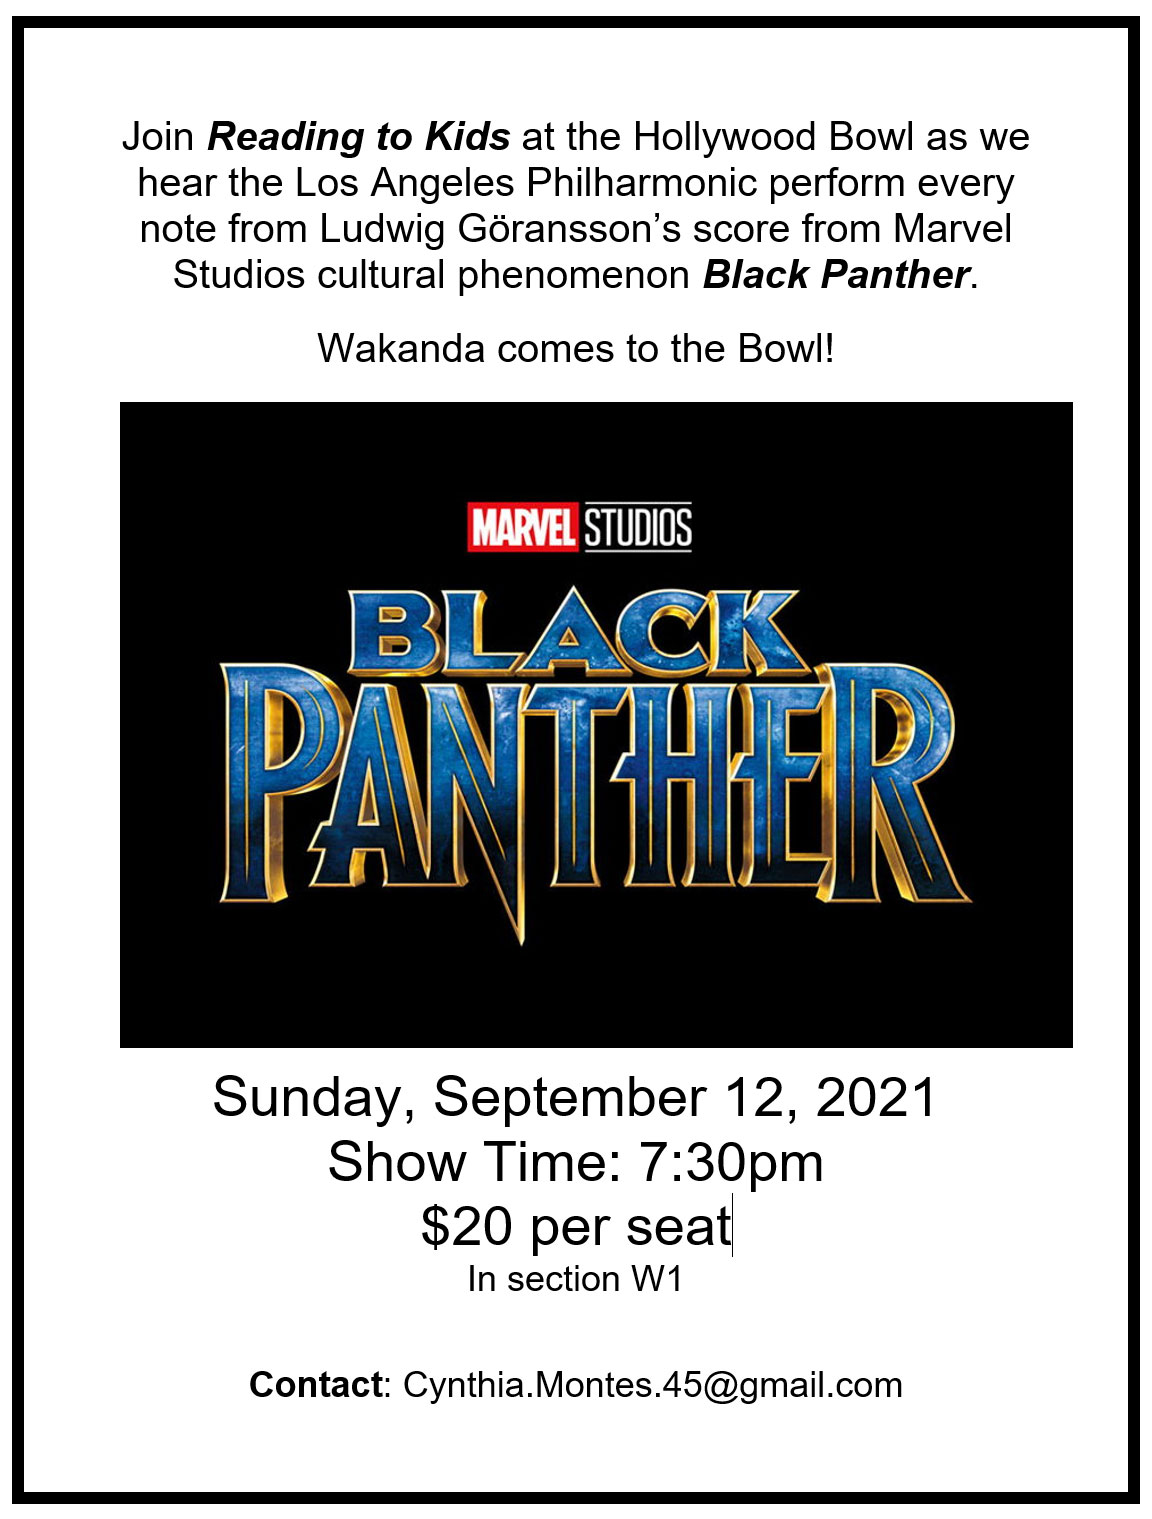 Black Panther at the Hollywood Bowl flyer